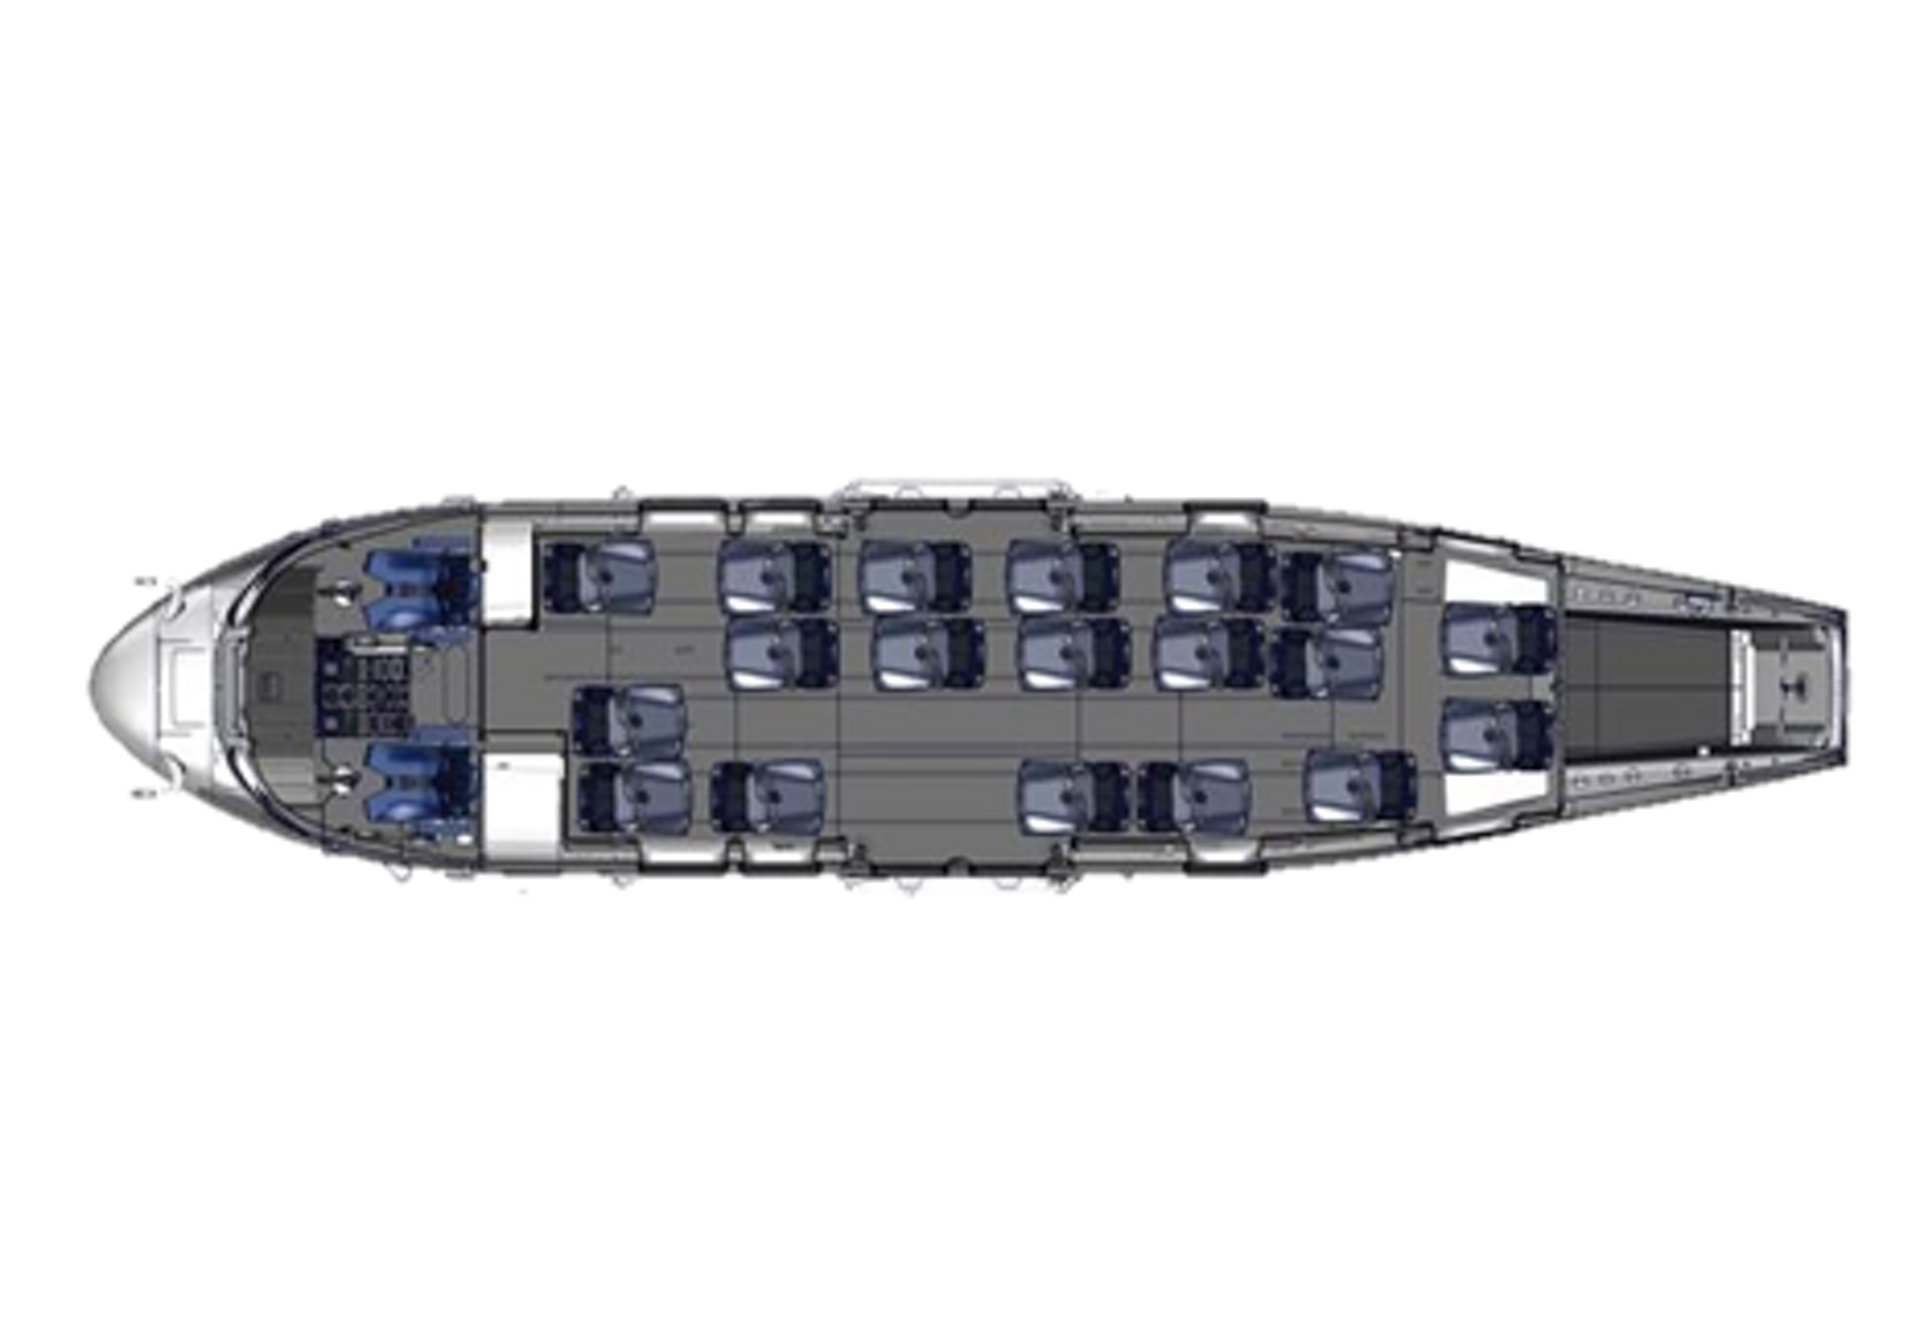 Diagram of an Airbus H225 helicopter cabin with 19 seats for passenger and offshore transport.